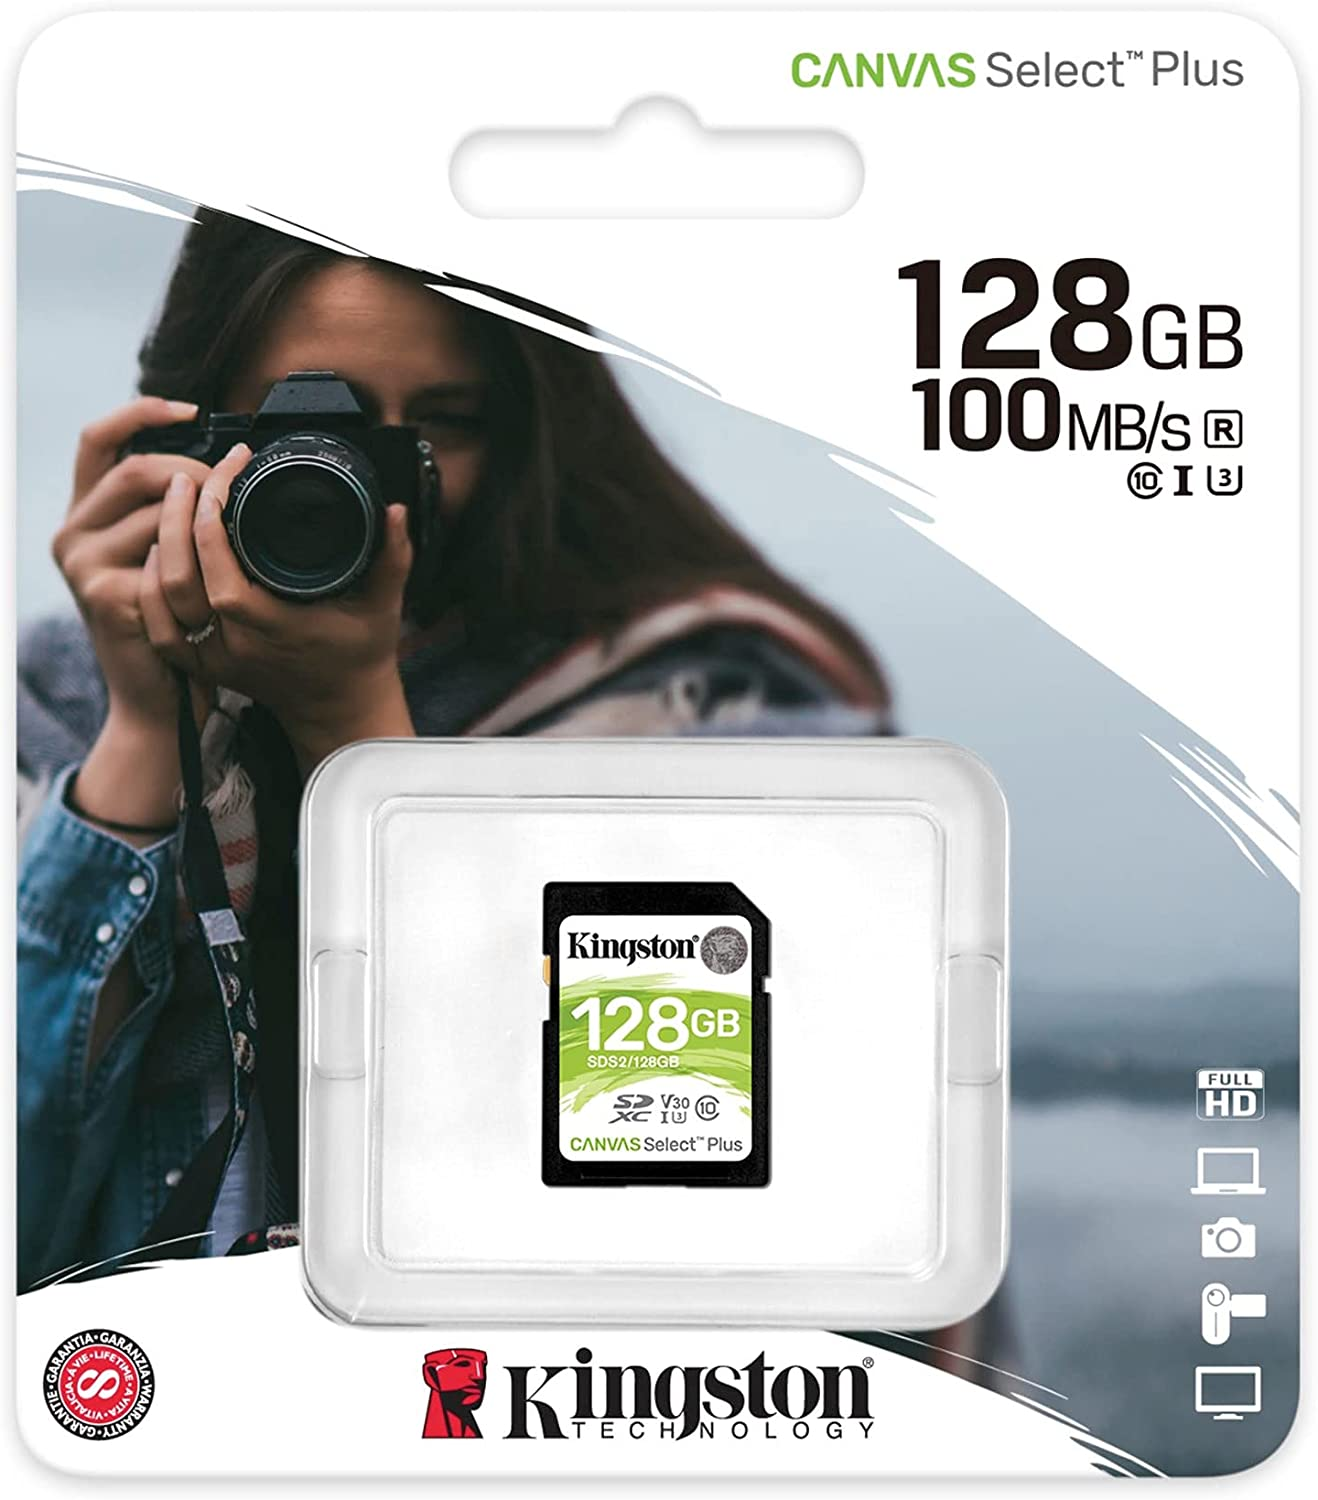 Kingston 128GB SDHC Canvas Select Plus Memory Card (SDS2/128GB) with Kingston Mobilelite Card Reader Bundle (2 Items)